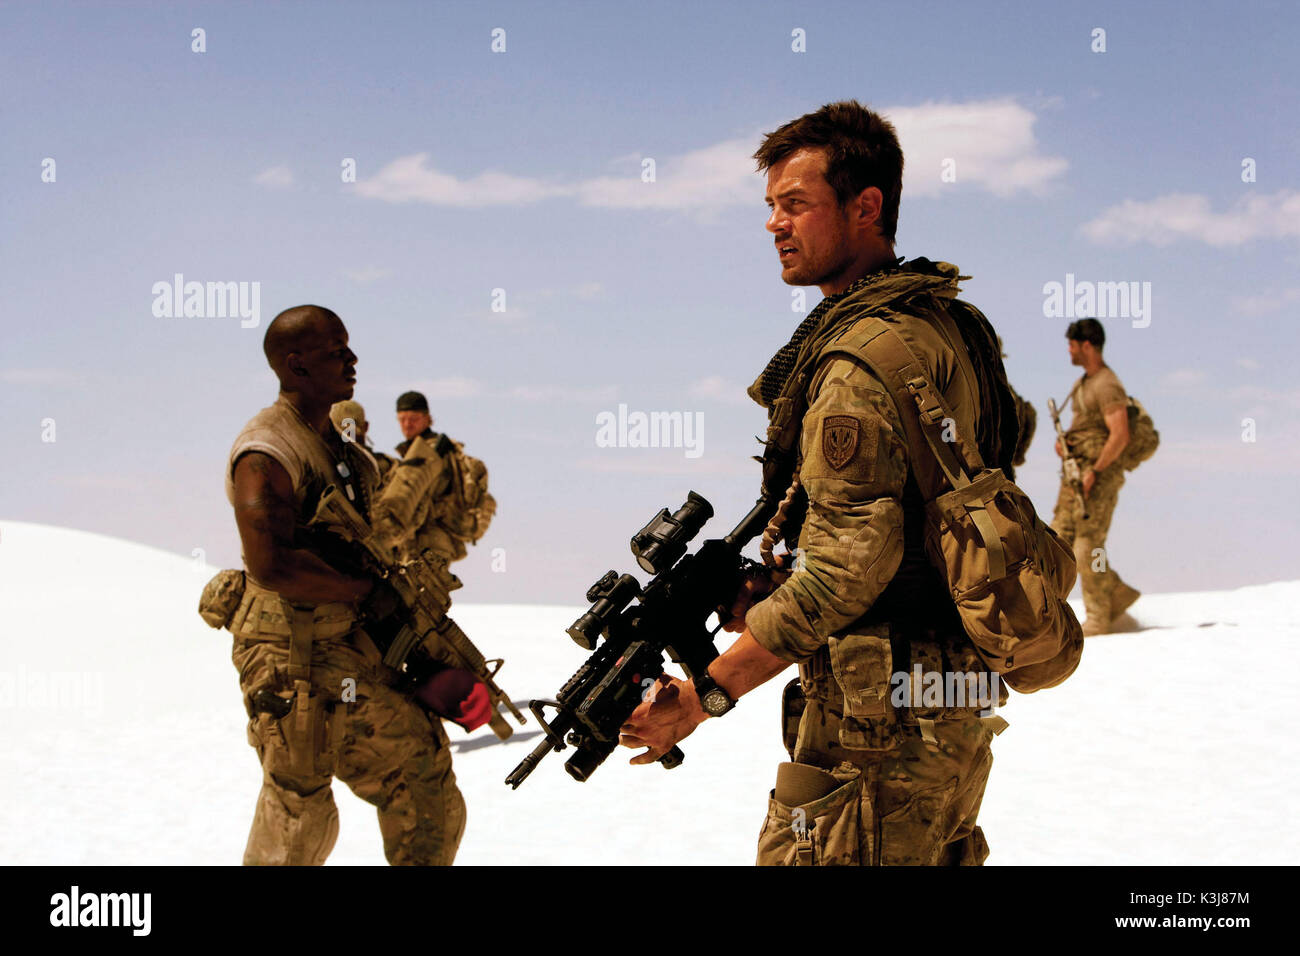 U.S. Air Force Tech. Sgt. Epps (TYRESE GIBSON, left) and Special Forces Army Capt. Lennox (JOSH DUHAMEL, right) Stock Photo